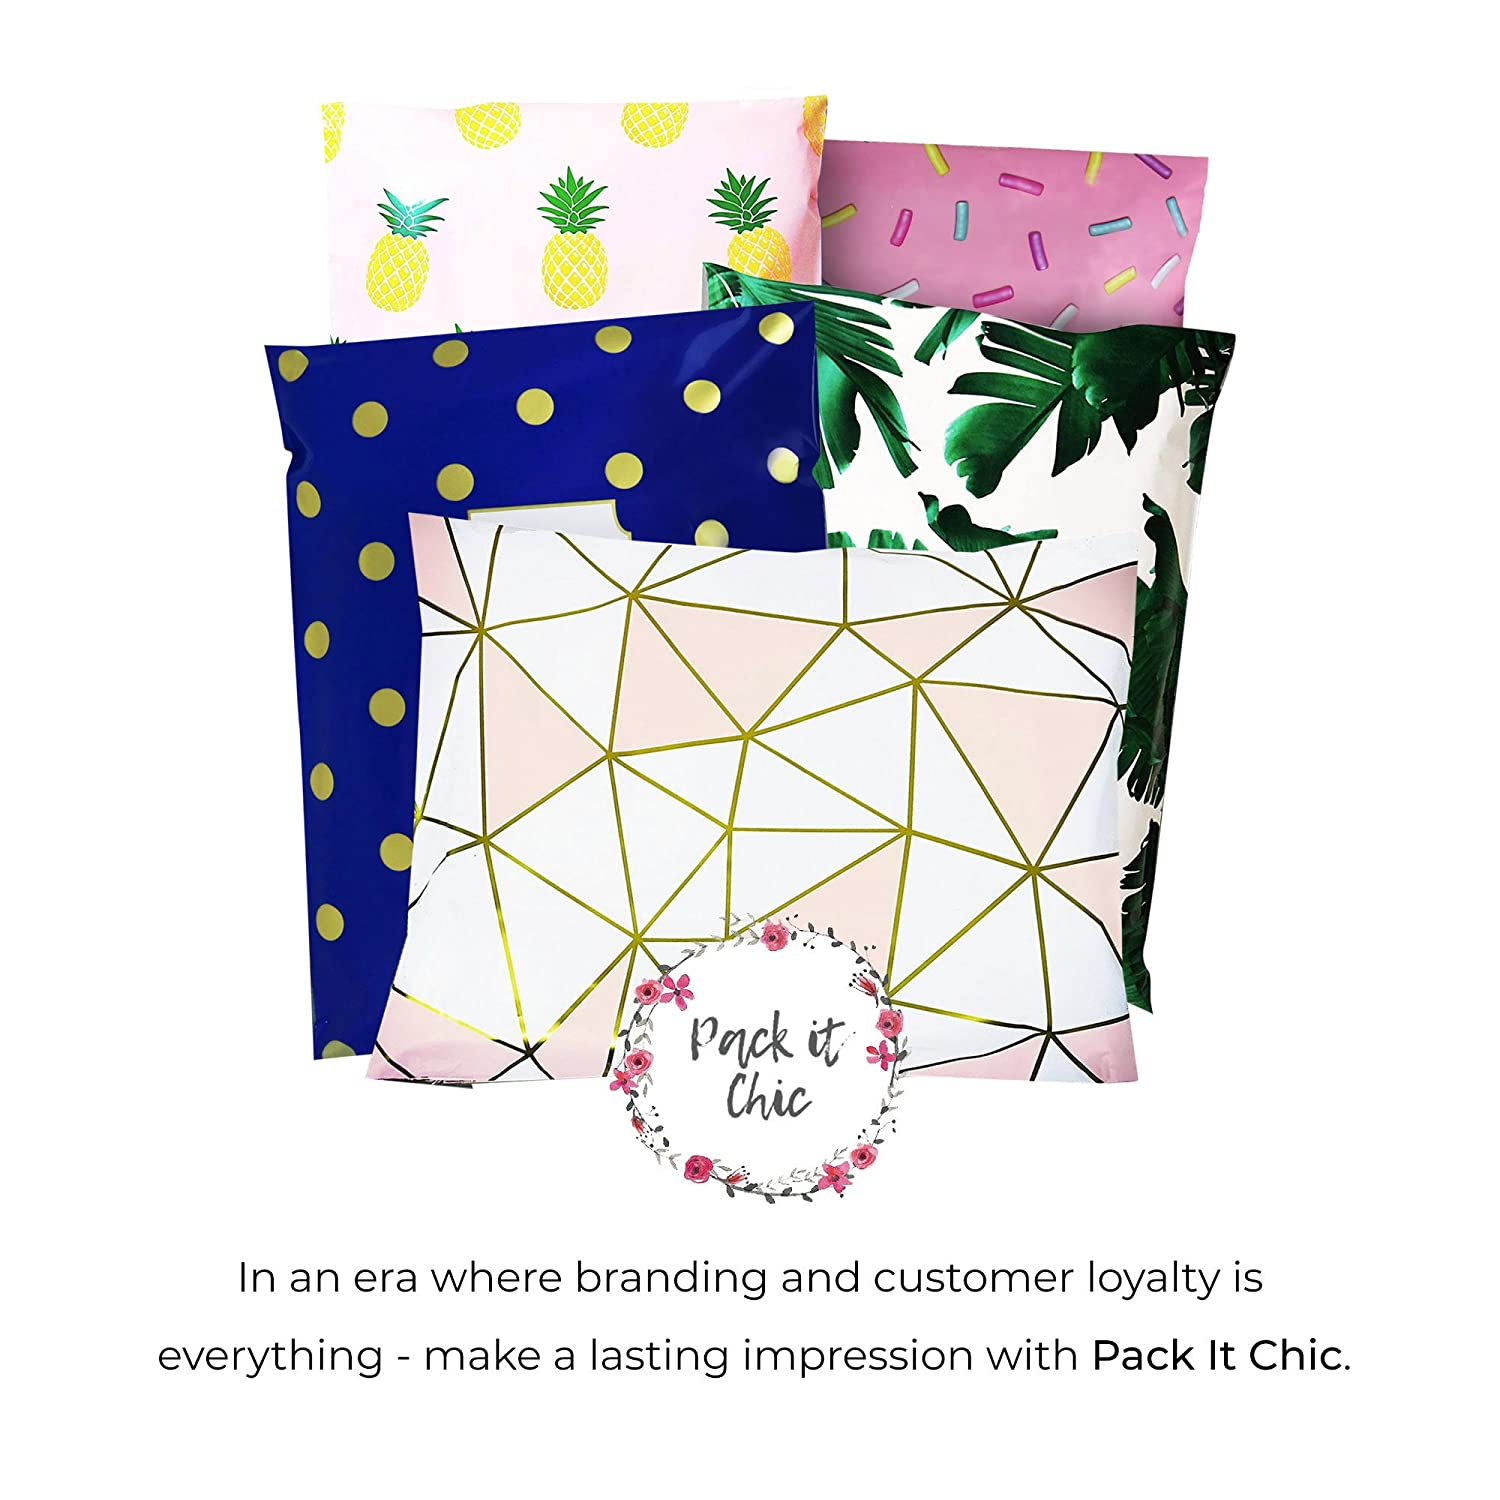 Pack It Chic - 10 X 13 (100 Pack) Tropical Leaves Poly Mailer Envelope Plastic Custom Mailing & Shipping Bags - Self Seal (More Designs Available) ATZ Premium Brands